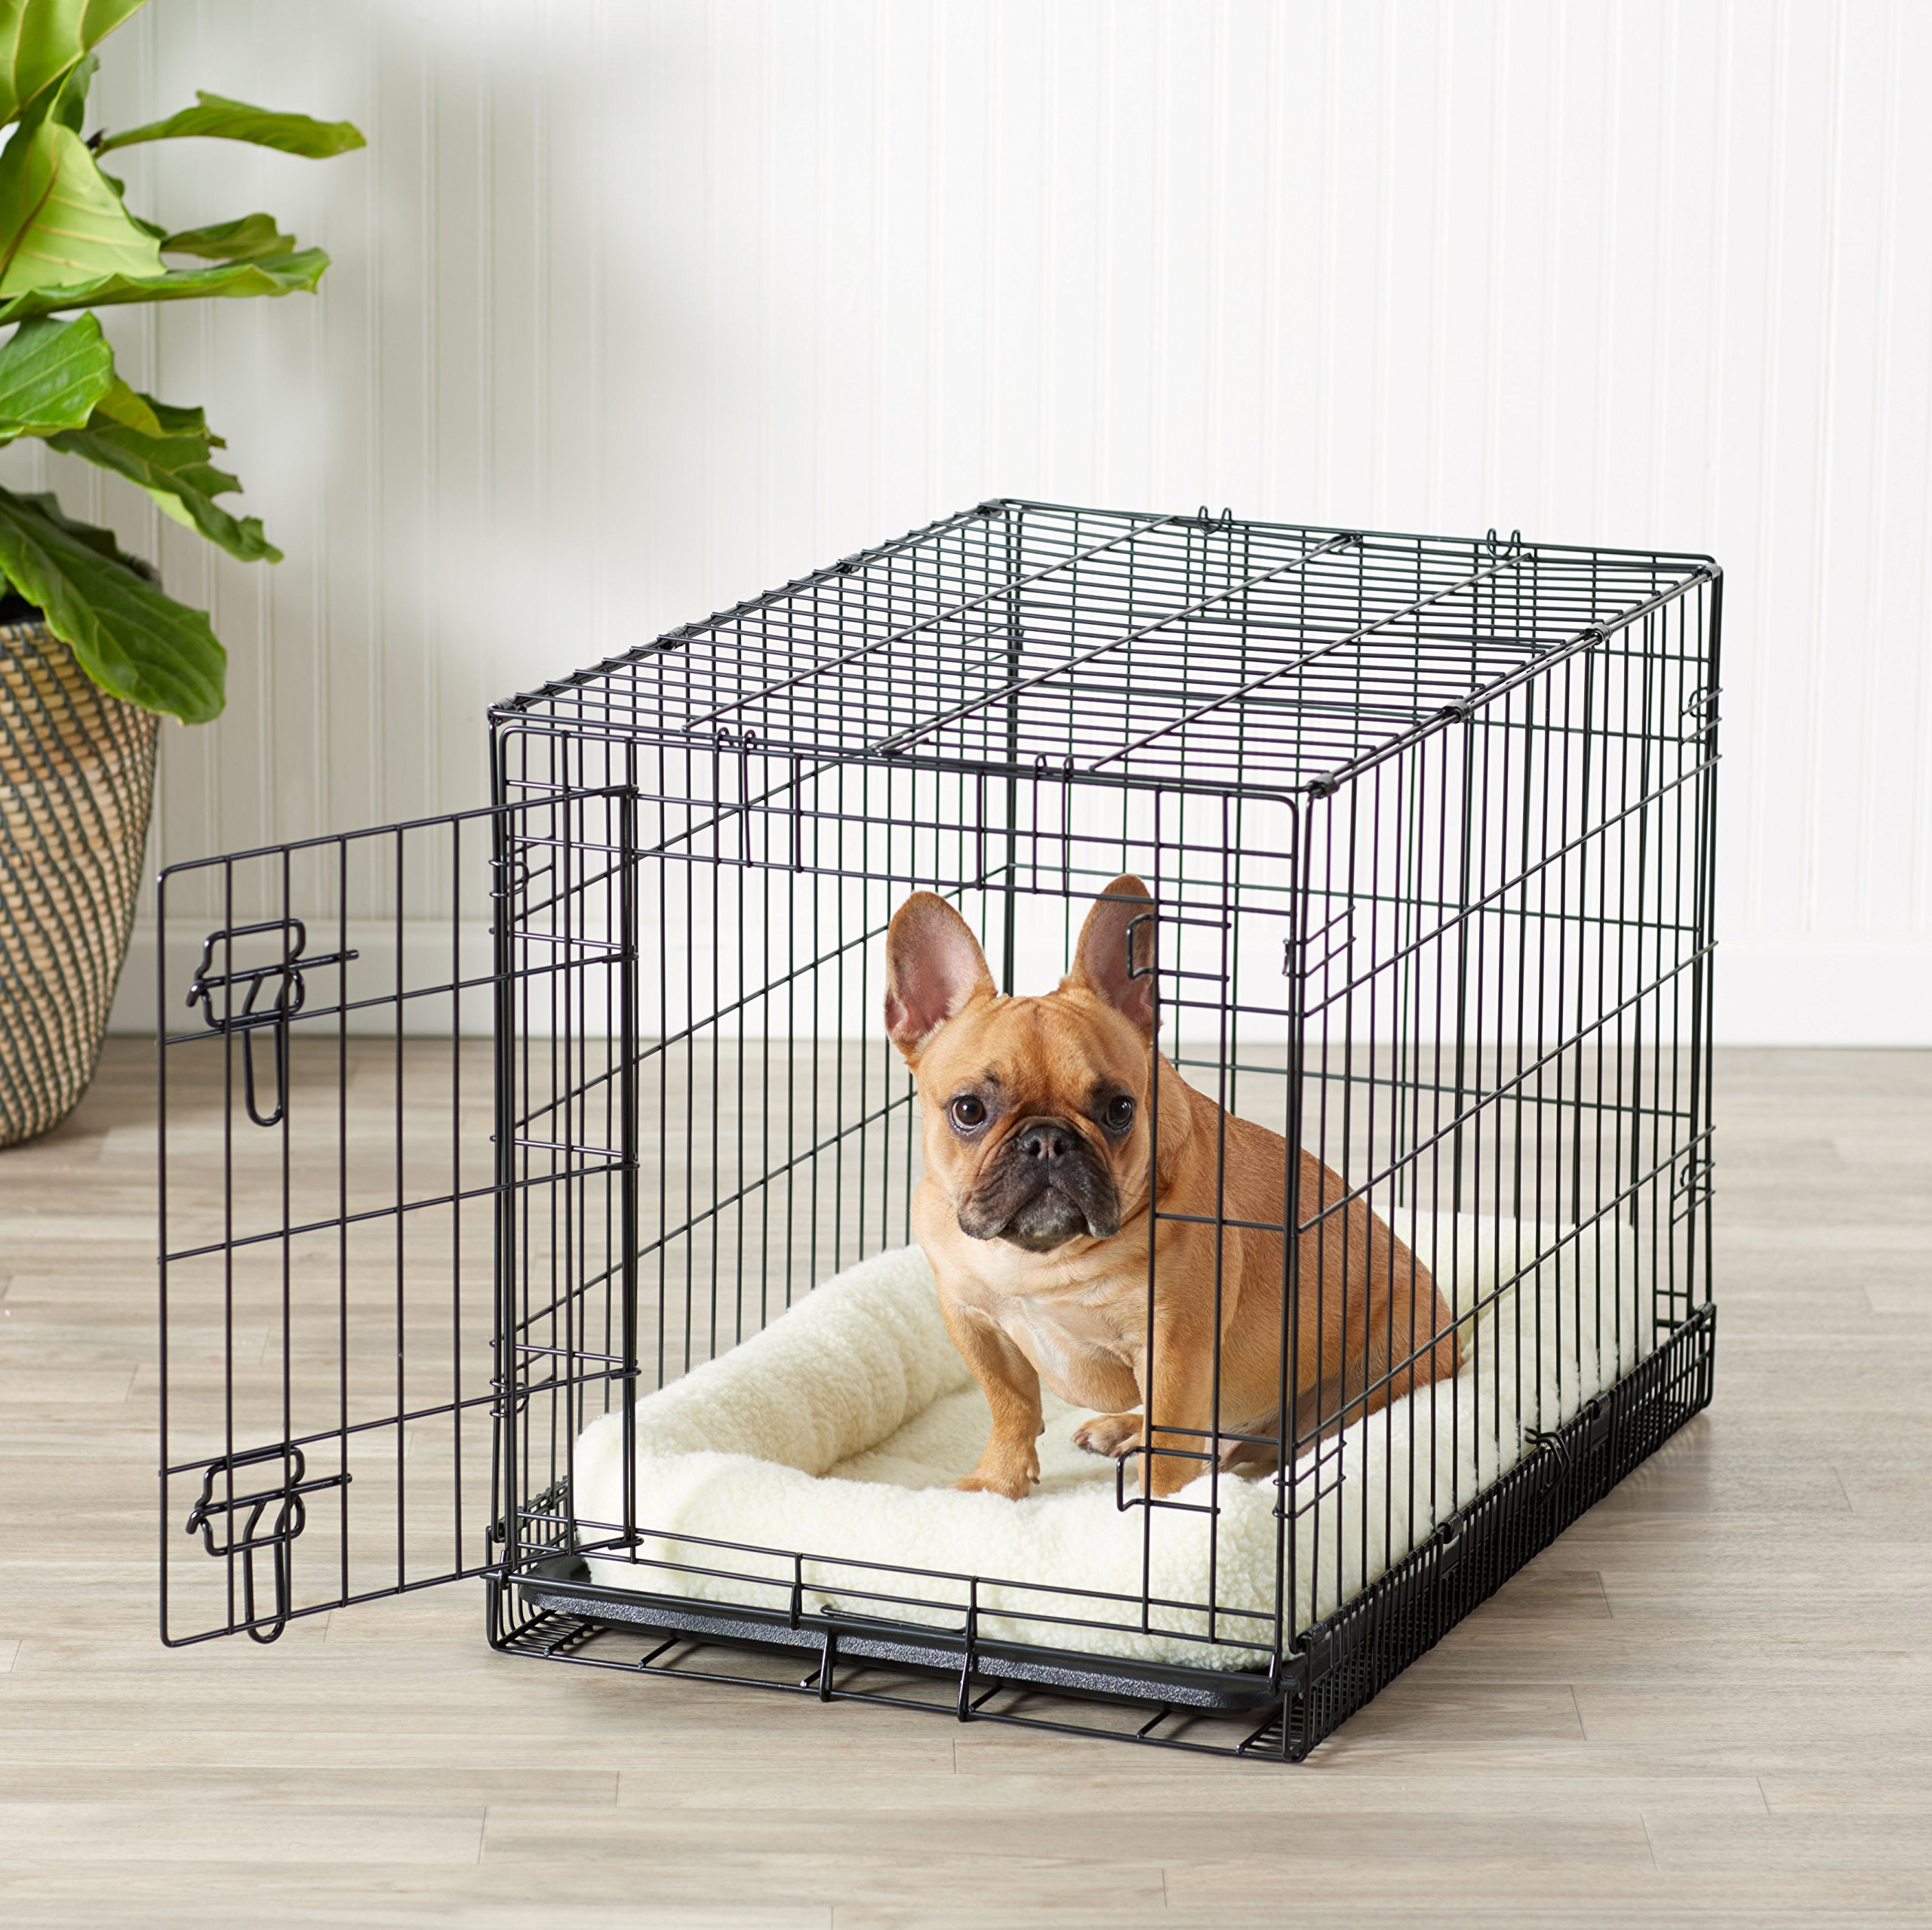 AmazonBasics Single Door Folding Metal Crate Kennel For Dog or Puppy - 30 x 19 x 21 Inches